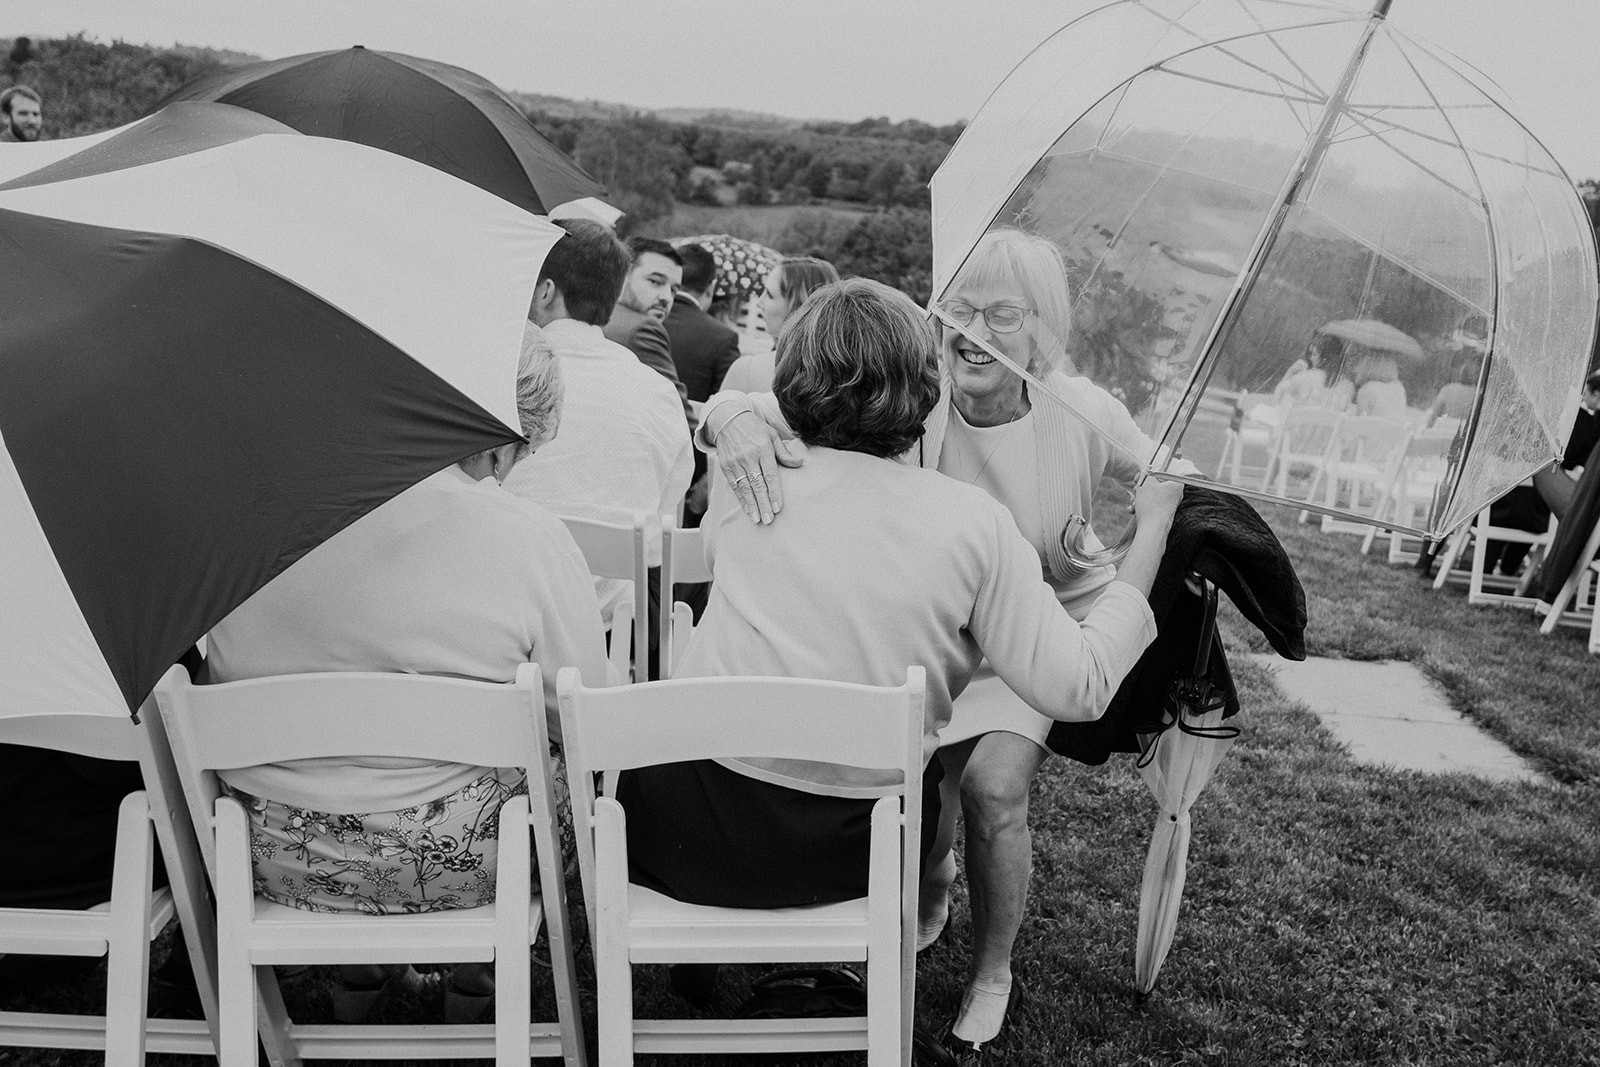 Guests hug under an umbrella at a spring outdoor wedding ceremony at Blue Hill Farm in Waterford, VA.